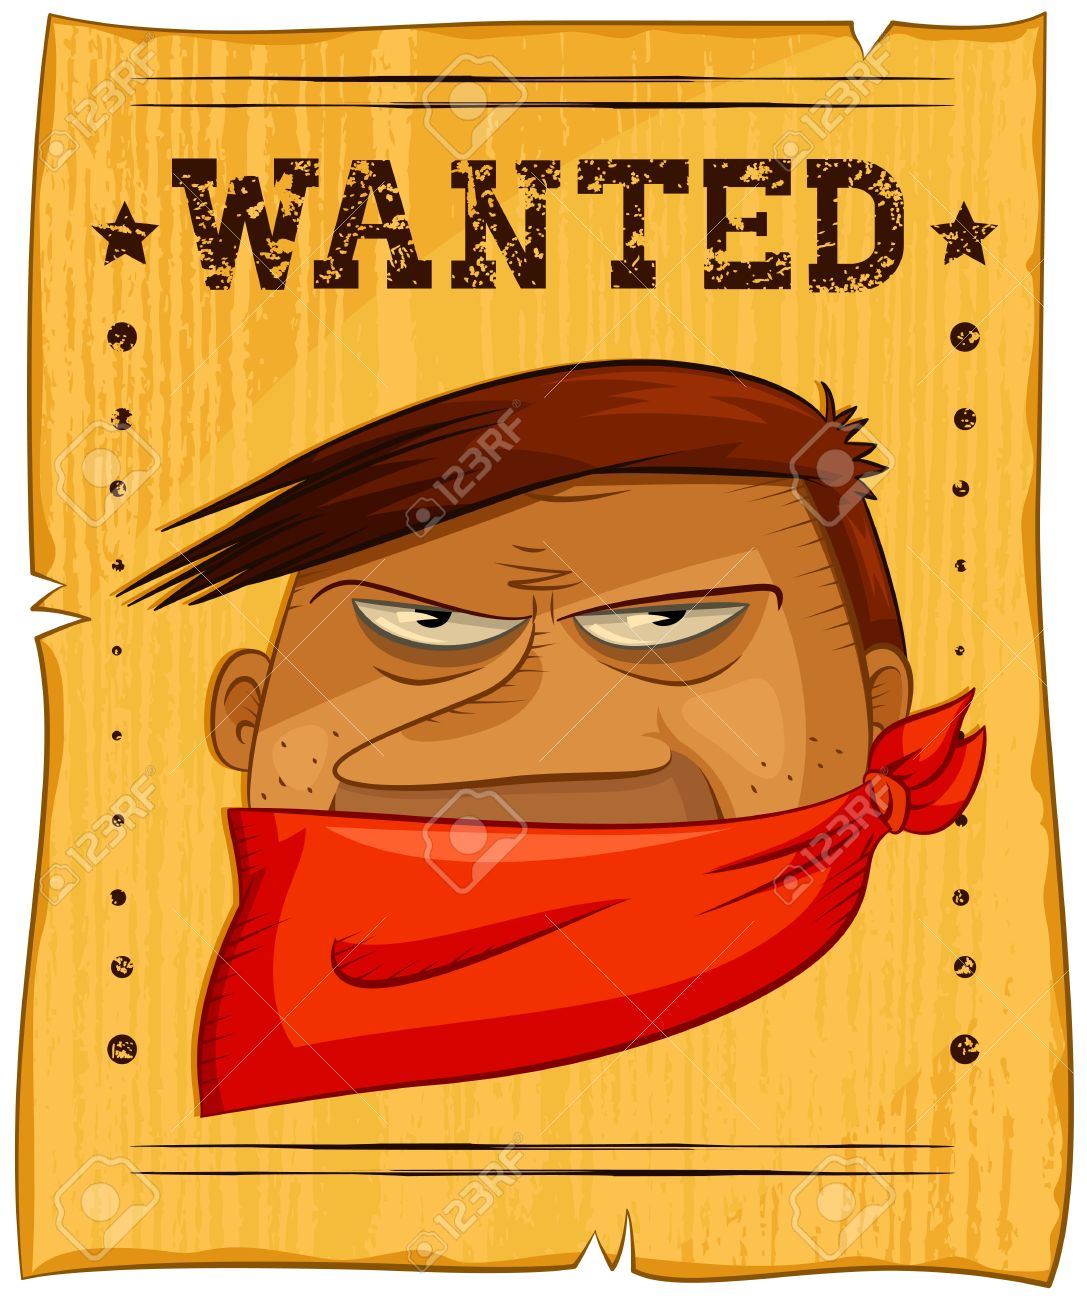 Wild West Poster With A Wanted Bandit Royalty Free Cliparts, Vectors ...